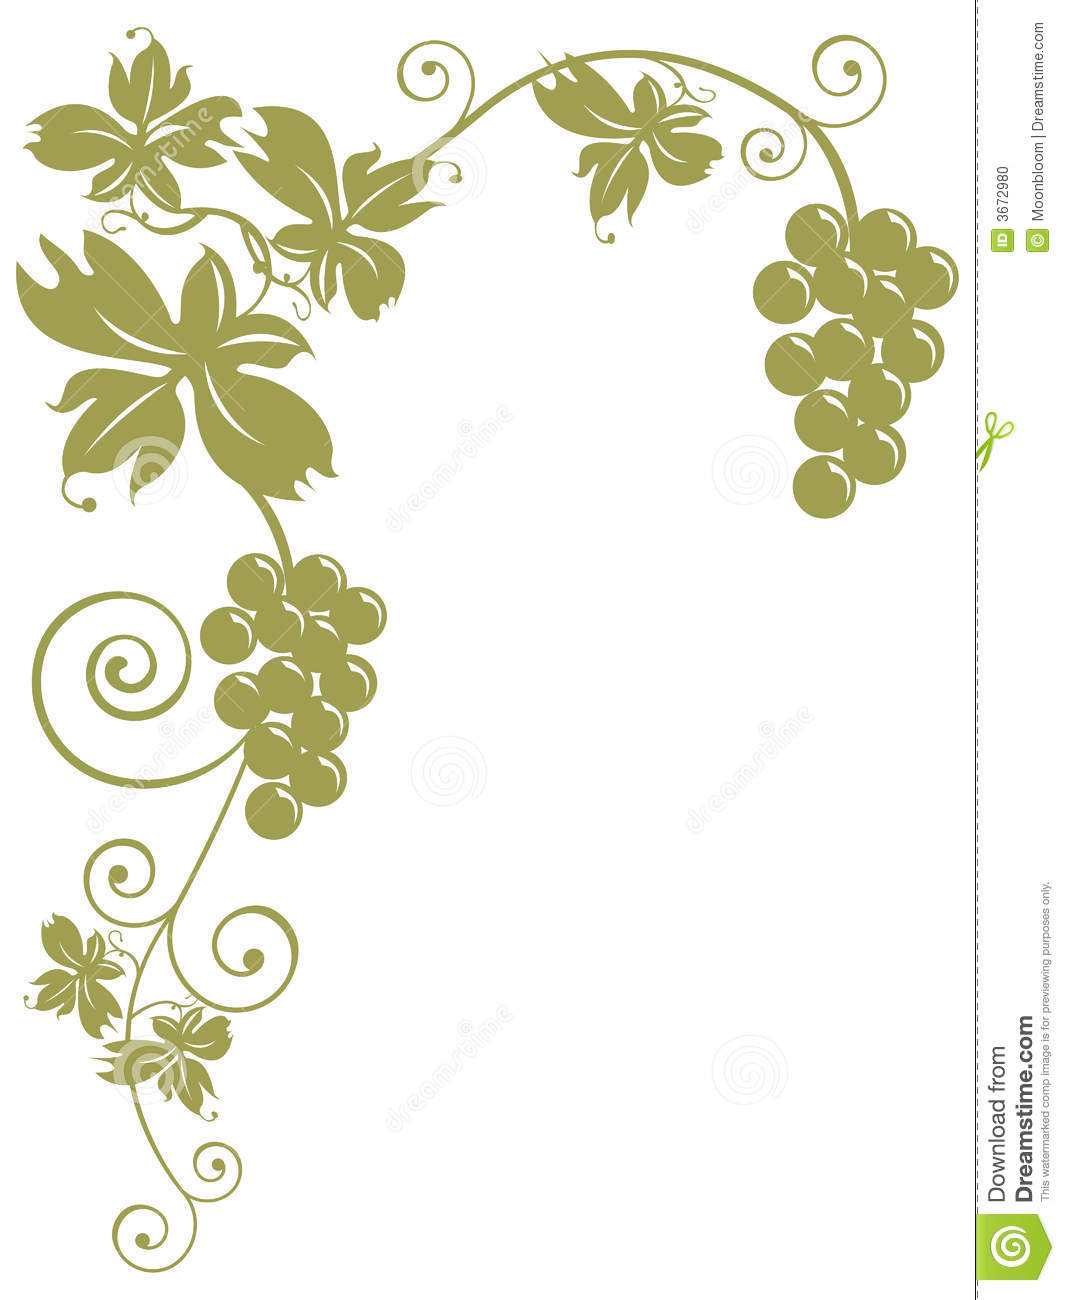 Bunches Of Grapes And Leaves Stock Vector  Illustration